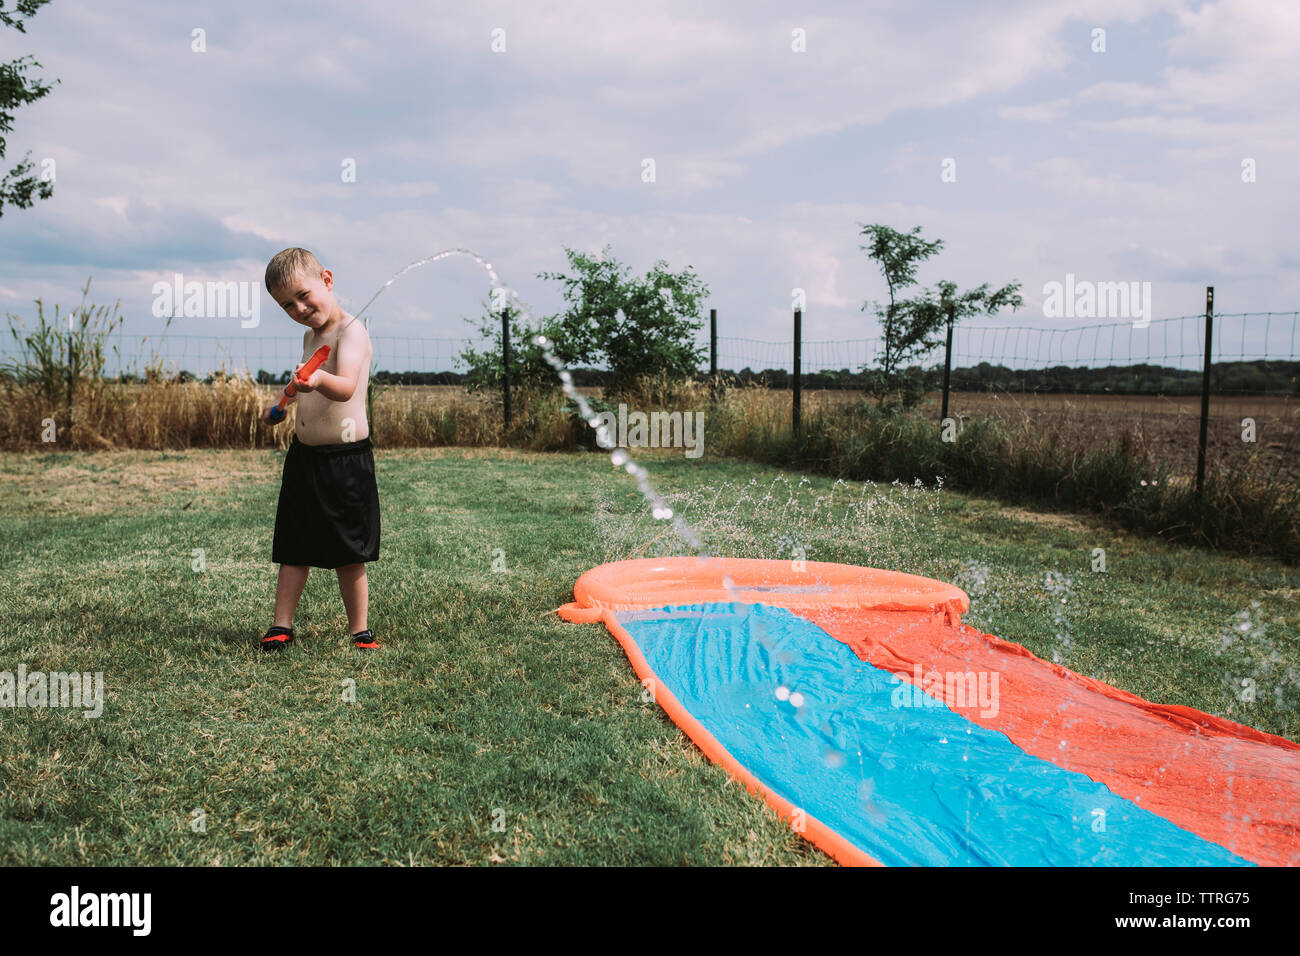 Boy playing with squirt gun by water slide at yard - Stock Image